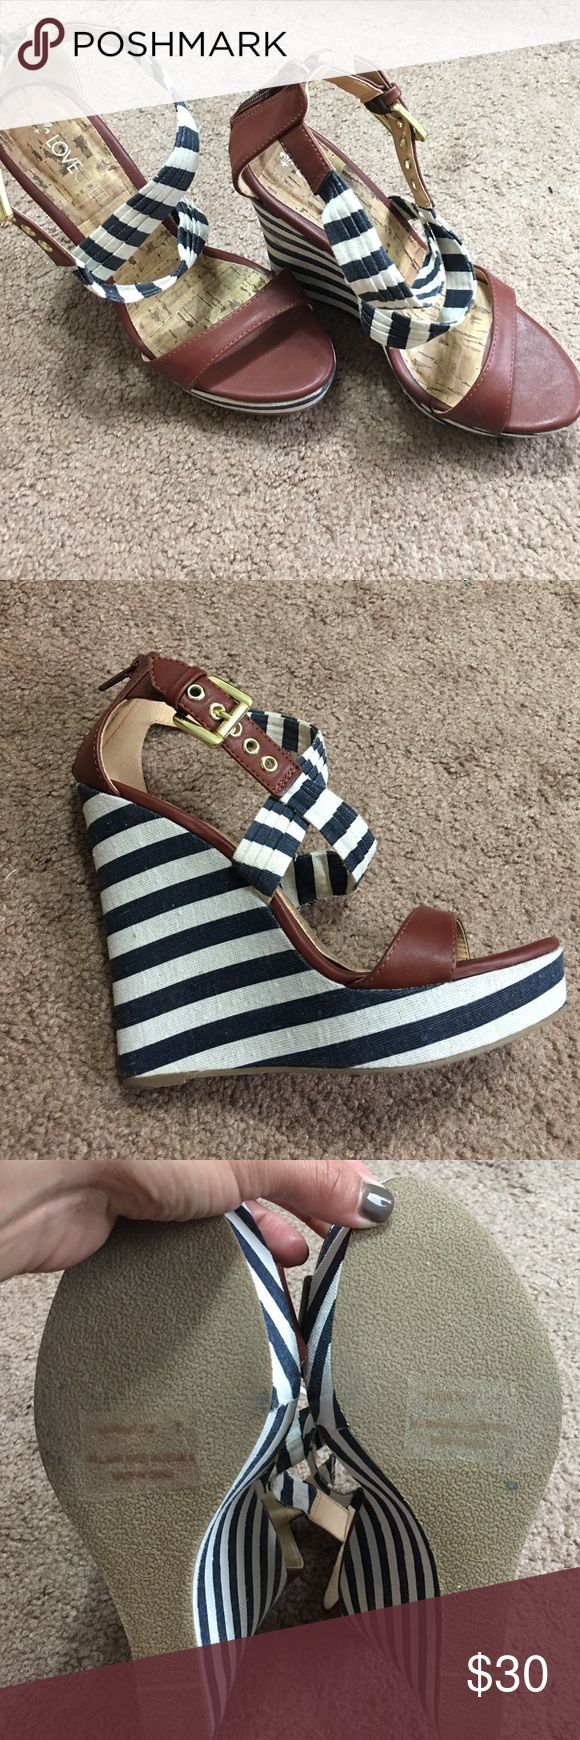 Blue and White Stripe Wedges New without tags wedges. I only tried them on inside. Purchased on poshmark boutique, but never got around to wearing them. They are super cute and run true to size. There is some discoloration on the inside of one of the straps as noted in the picture, but can't been seen when wearing them. Love Culture Shoes Wedges